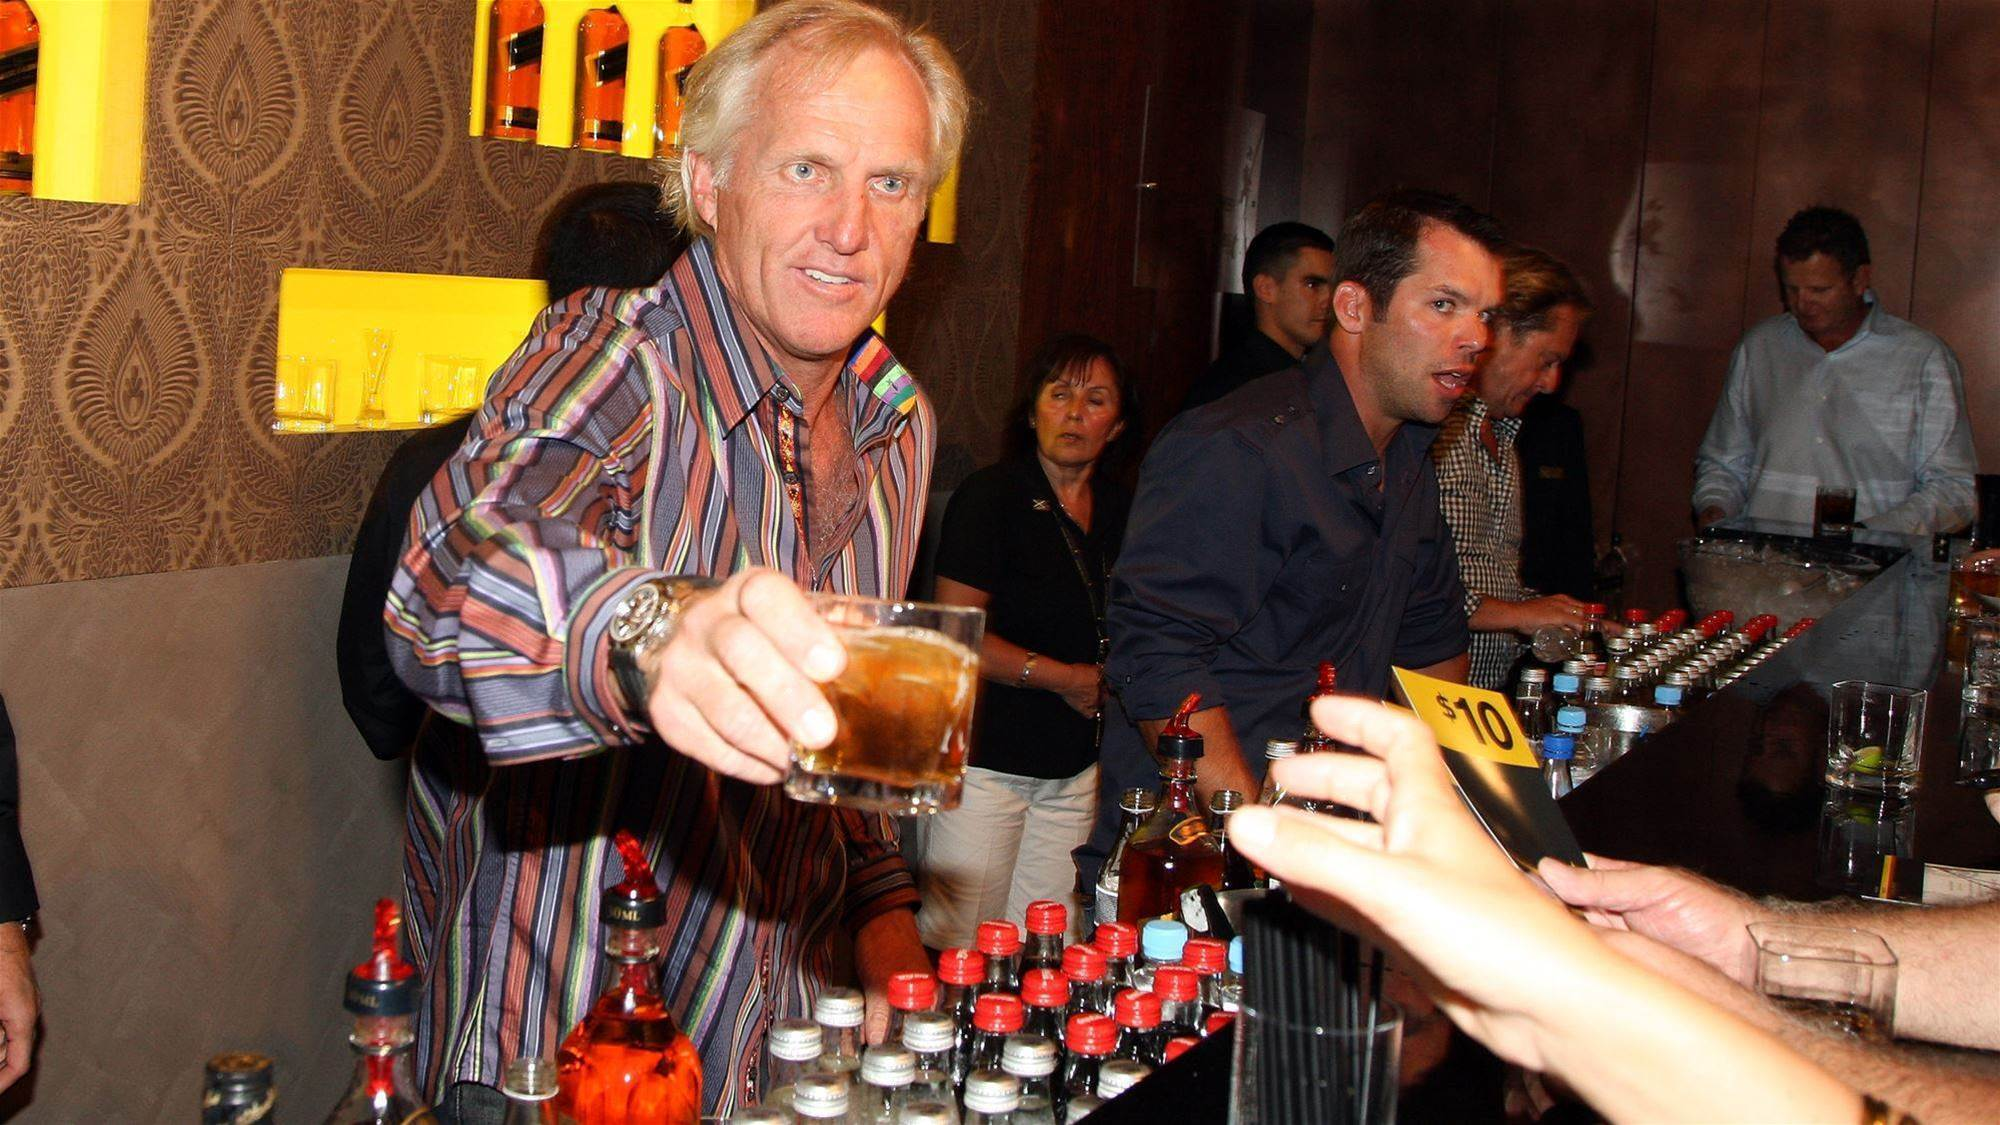 OPINION: Golf & the demon drink … here's cheers!